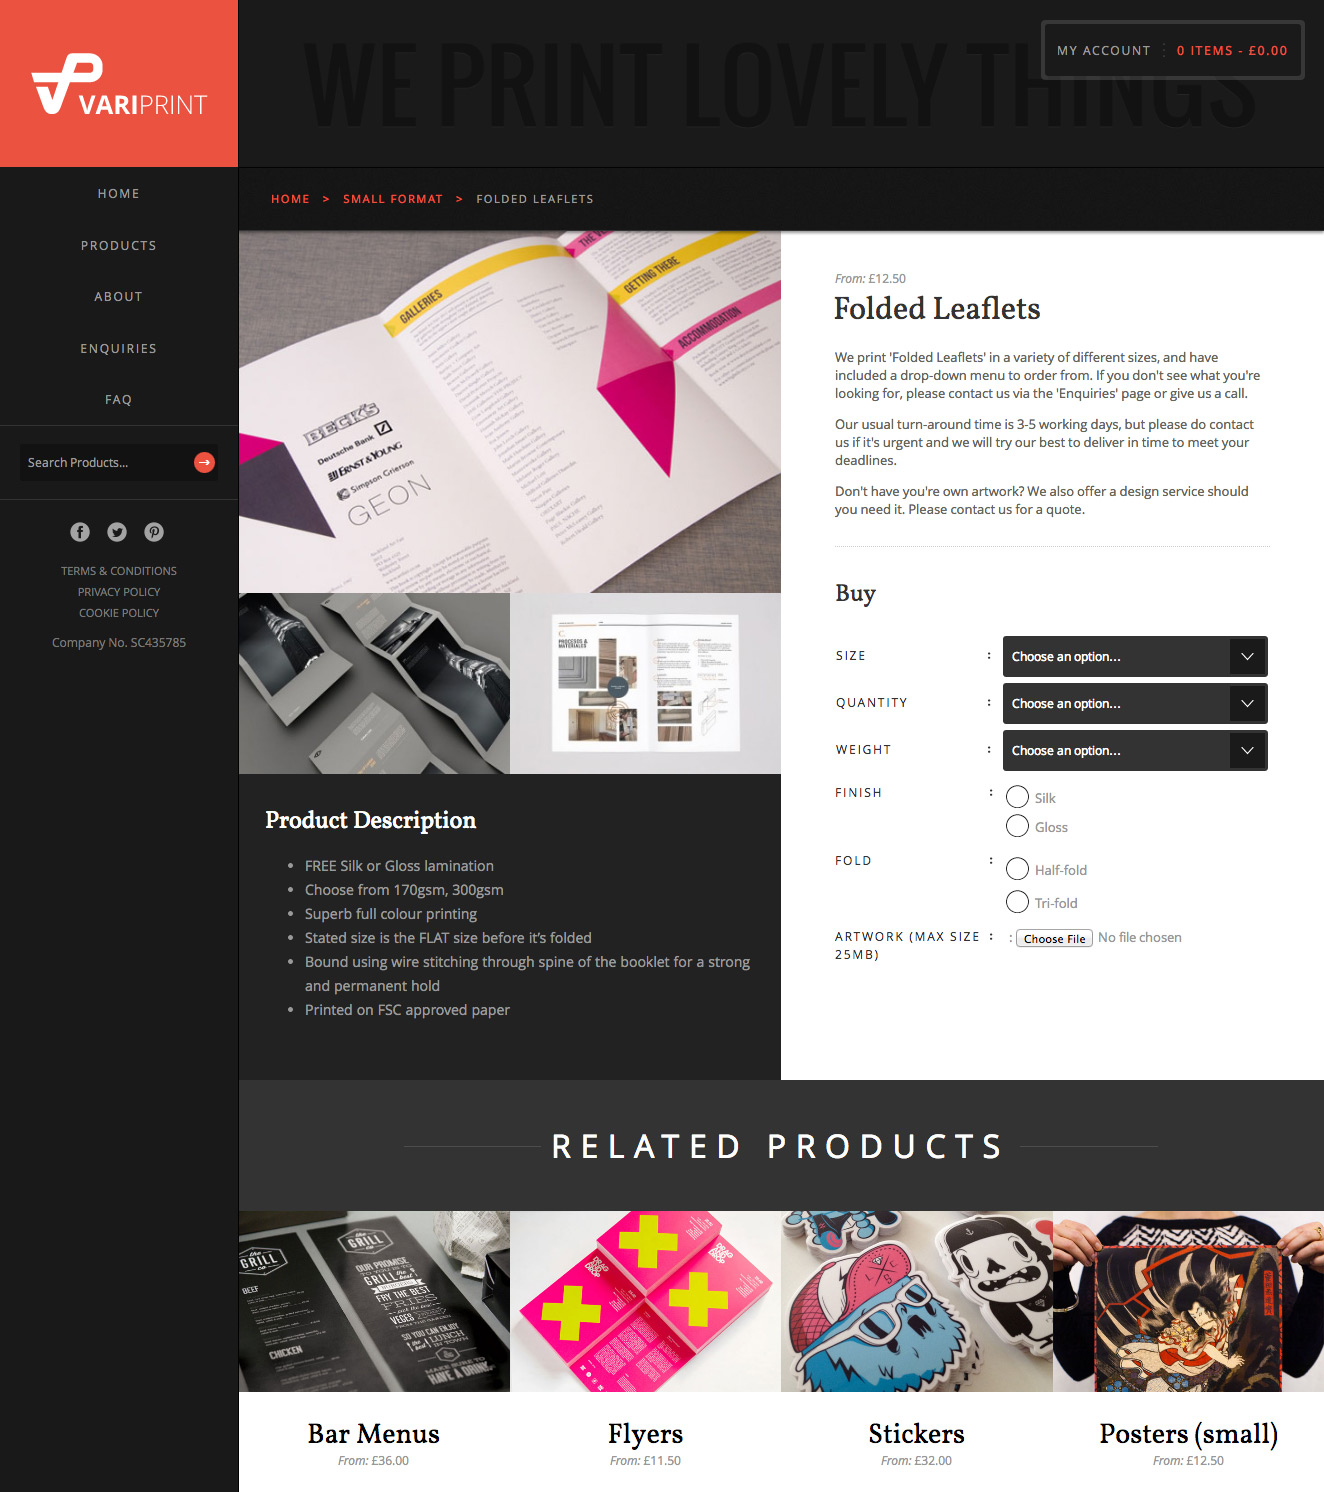 VariPrint single product page showing product information and options such as size, finish etc.